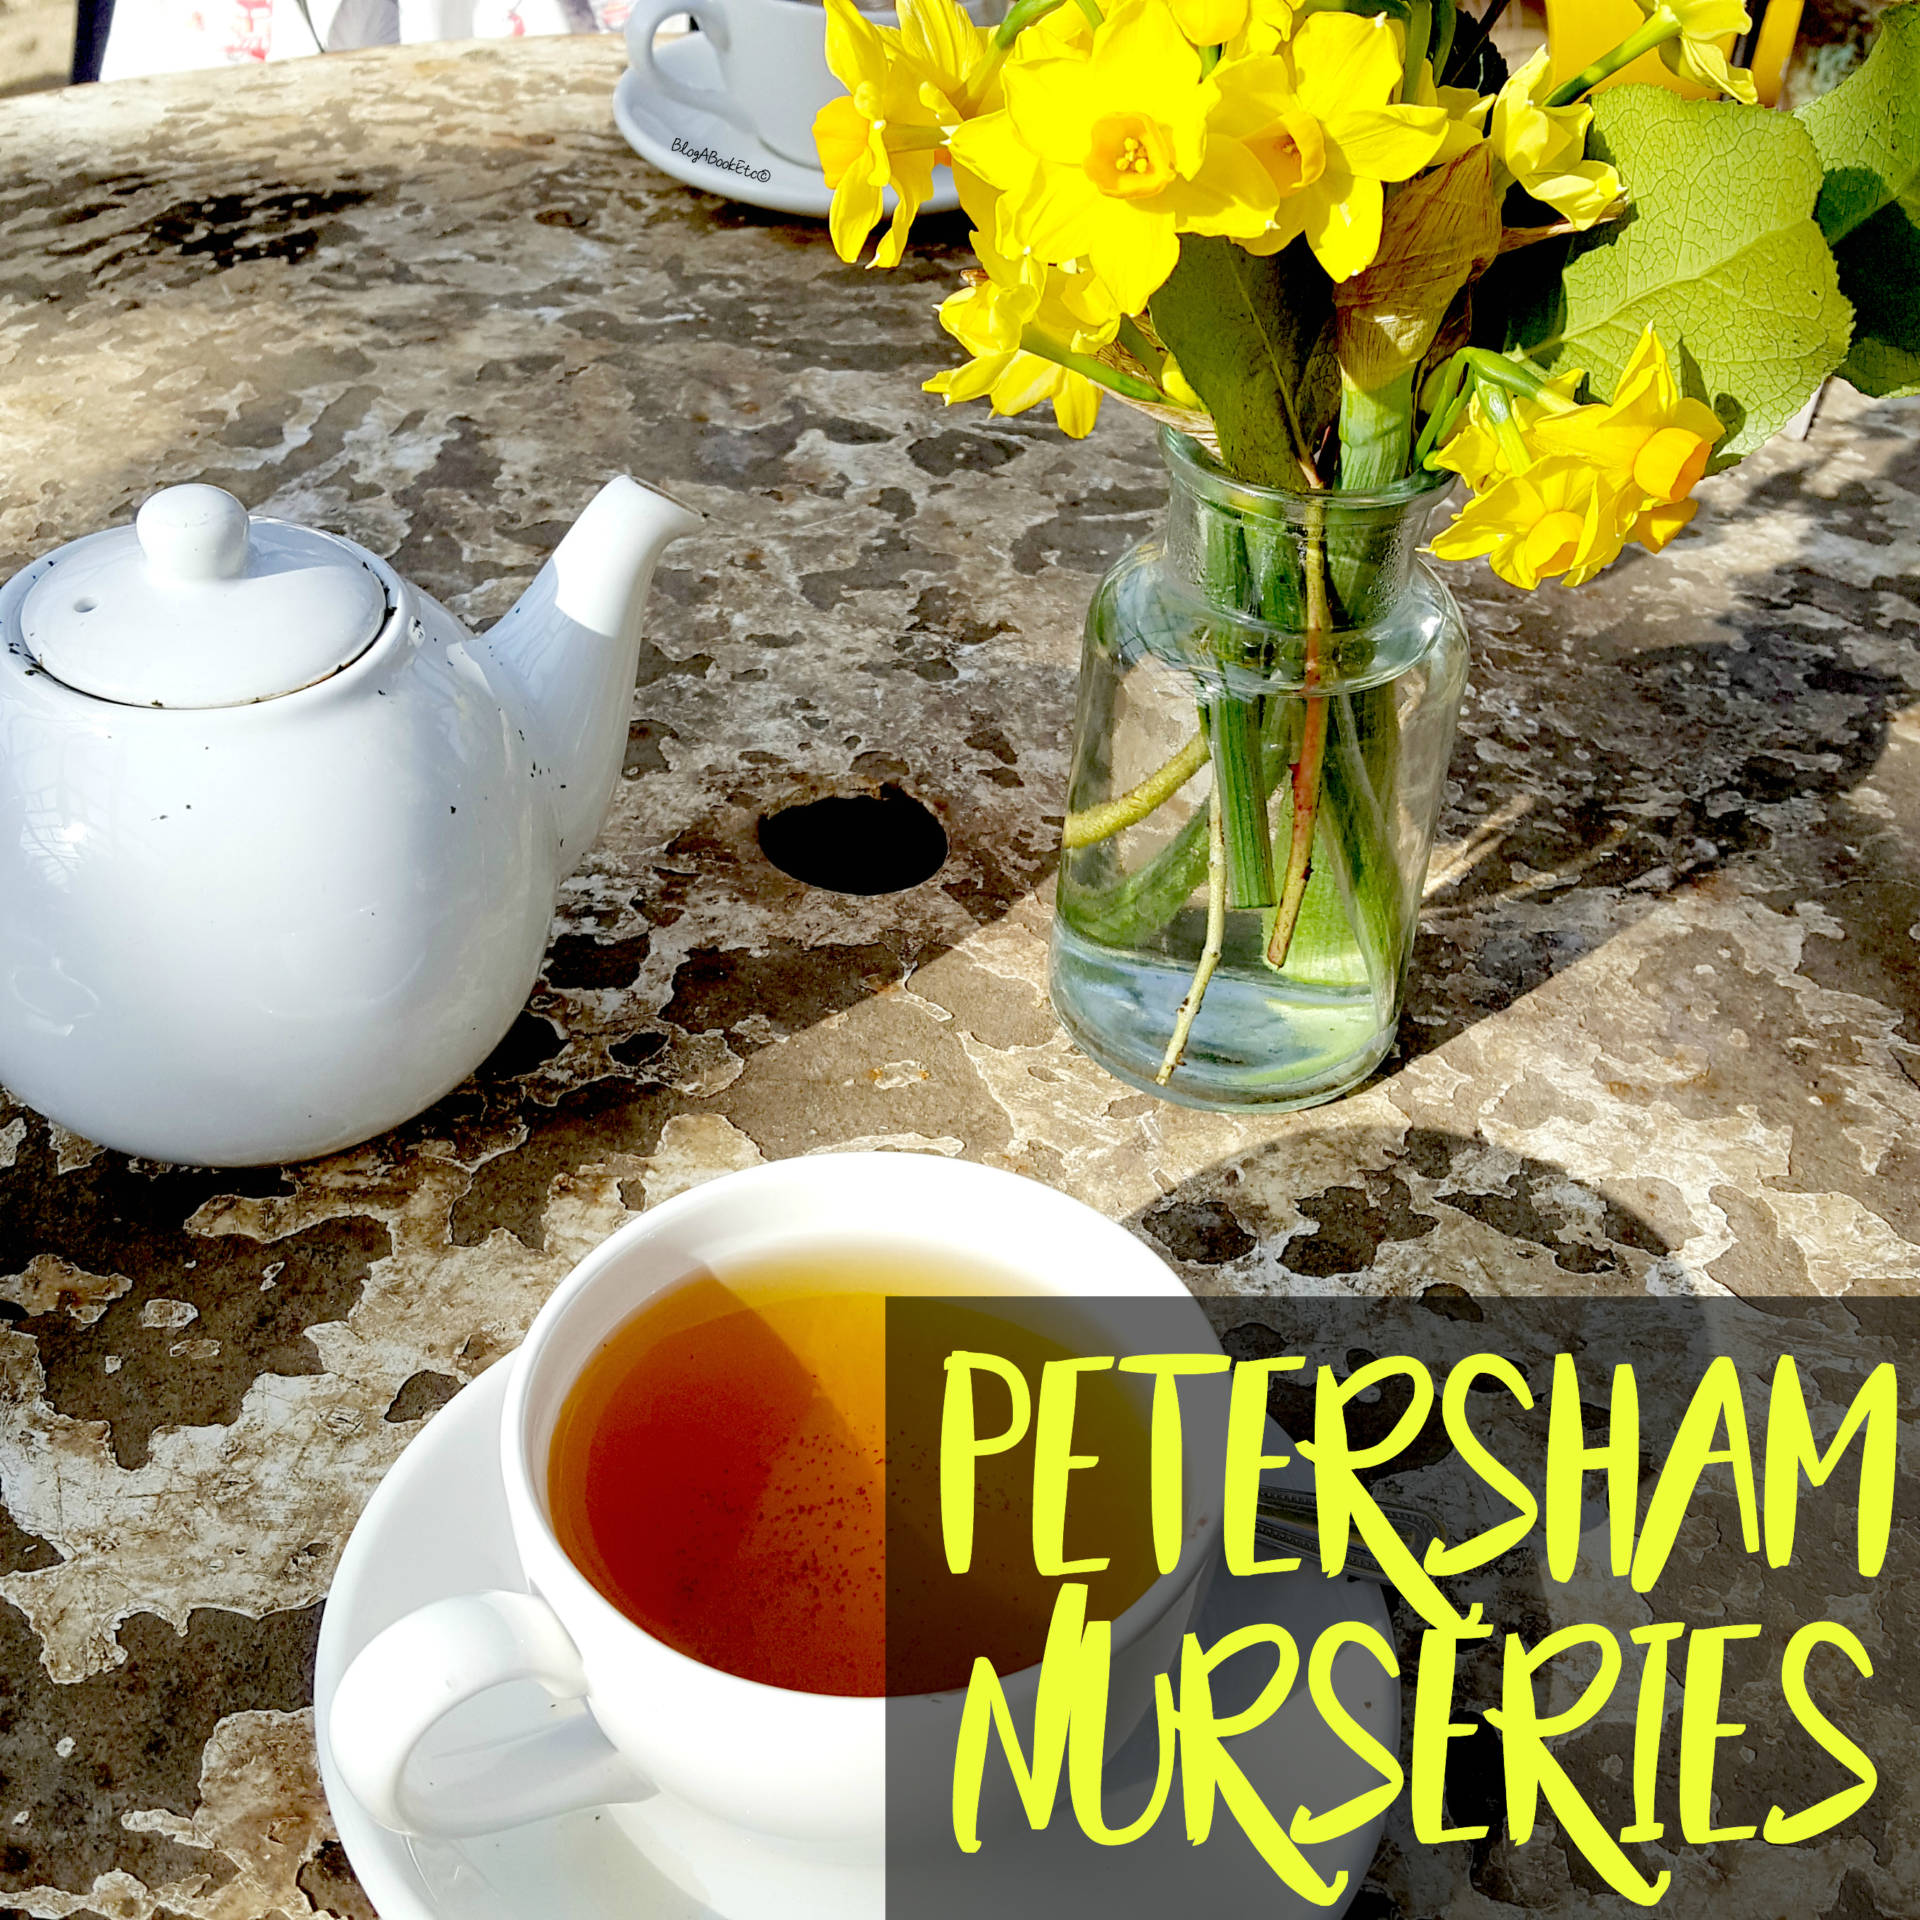 Petersham Nurseries, Petersham, Richmond, London, Surrey, Flowers, Plants, Succulents, Cacti, Cactus, Bedding Plants, Nurseries, Garden, Gardening, Summer, Beautiful, Tea, Tea Time, Daffodils, Tea Pot, Tea Lover, Vintage Table, Shabby Chic, Reclaimed, Beauty, Blogger, Life, Lifestyle, Blog A Book Etc, Fay